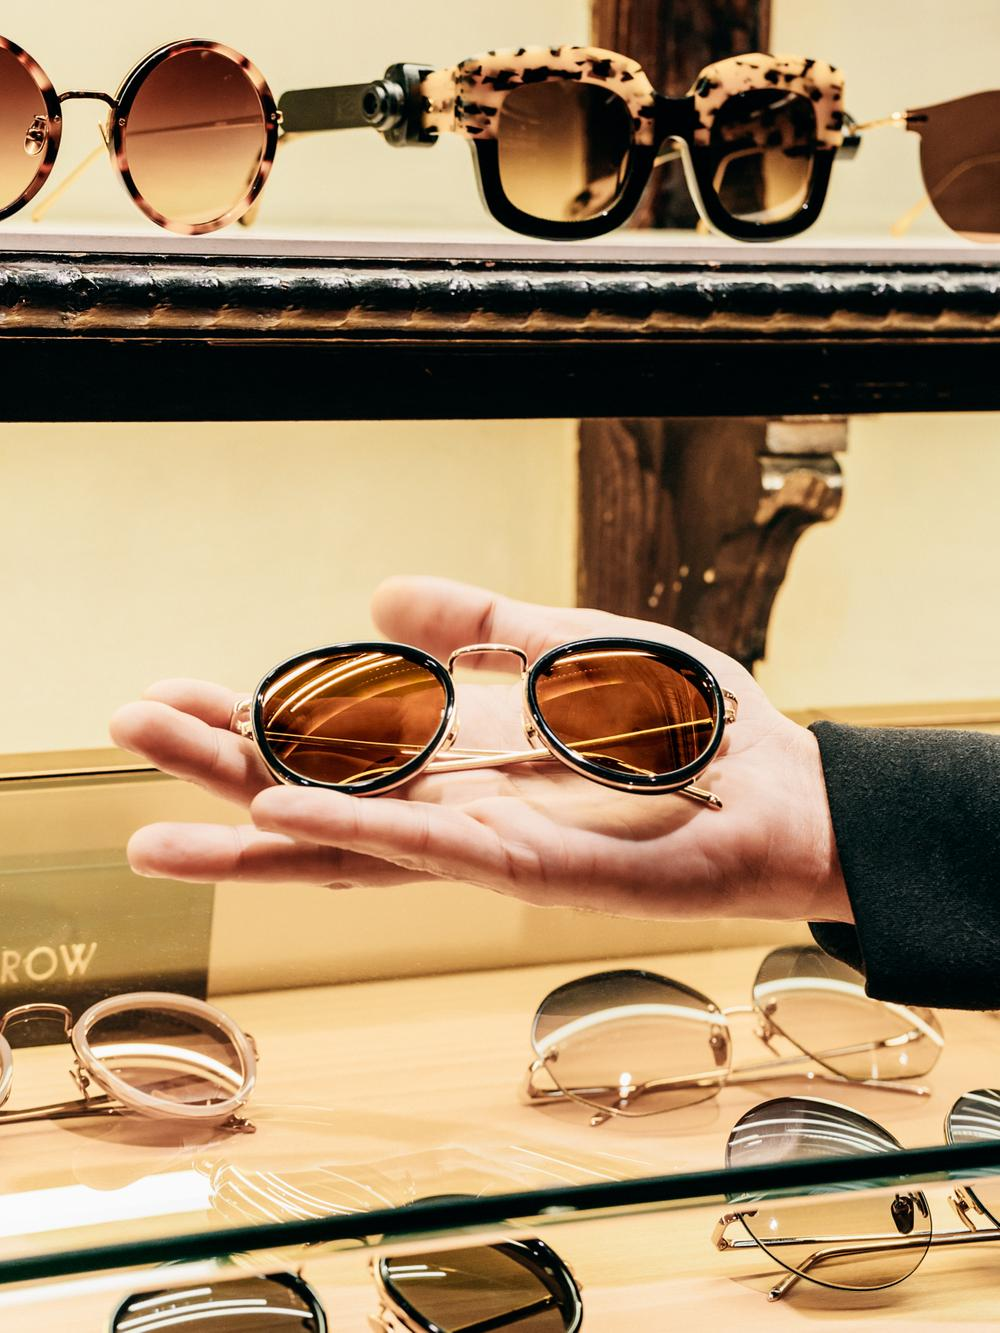 Best in class ptica toscana issue 101 magazine monocle - Optica toscana madrid ...